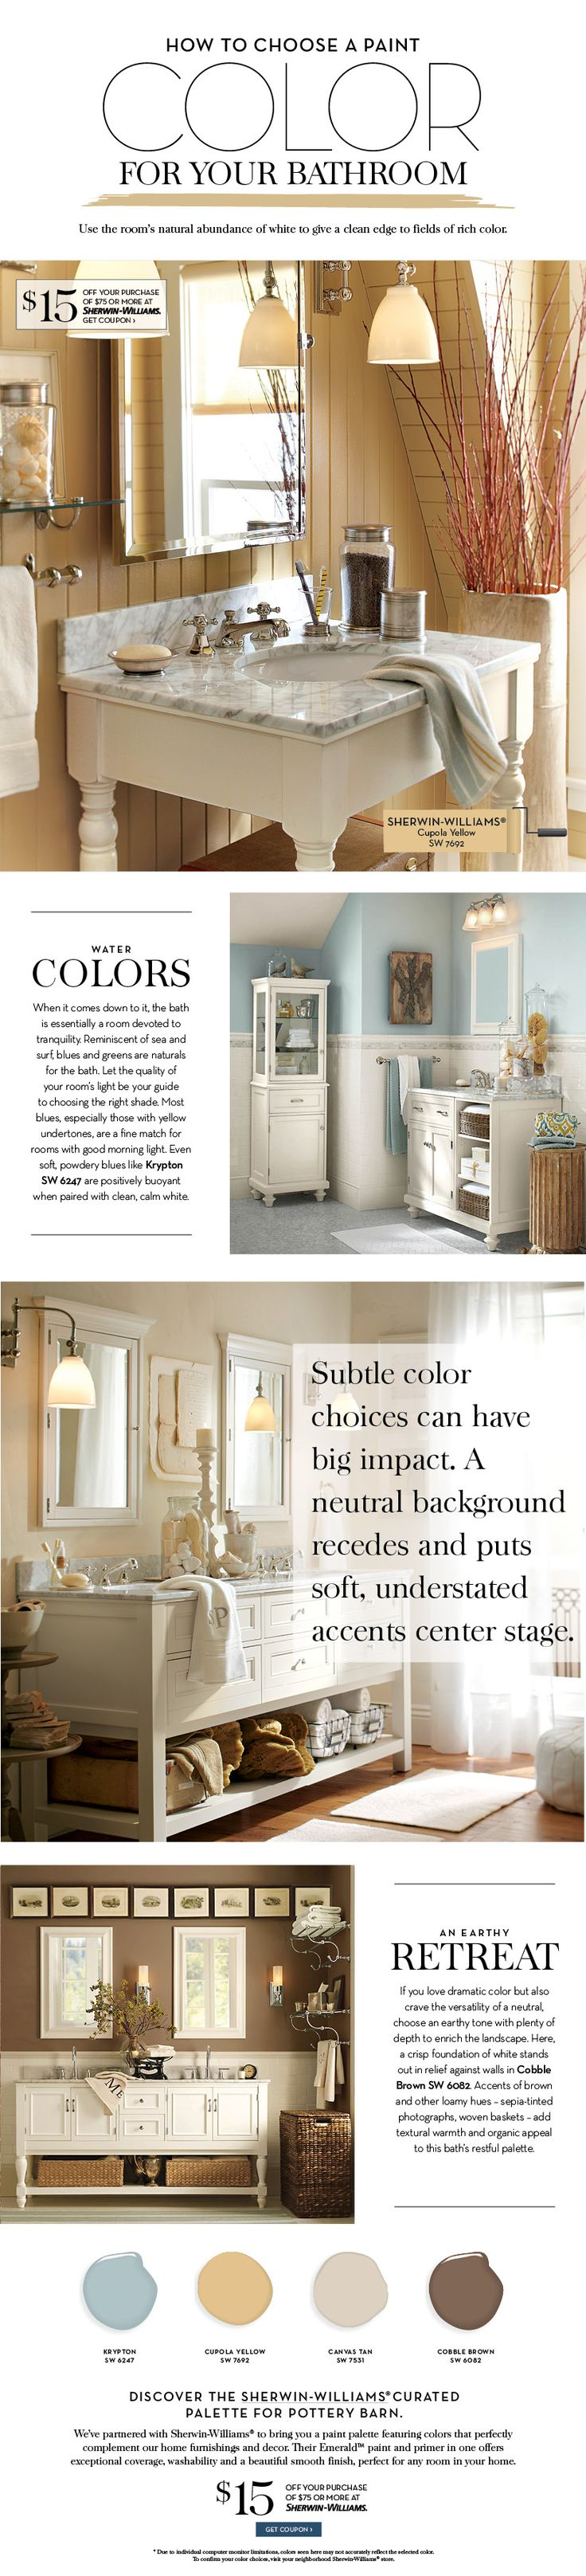 Pottery barn bathroom paint colors - Find This Pin And More On Paint Colors Pottery Barn